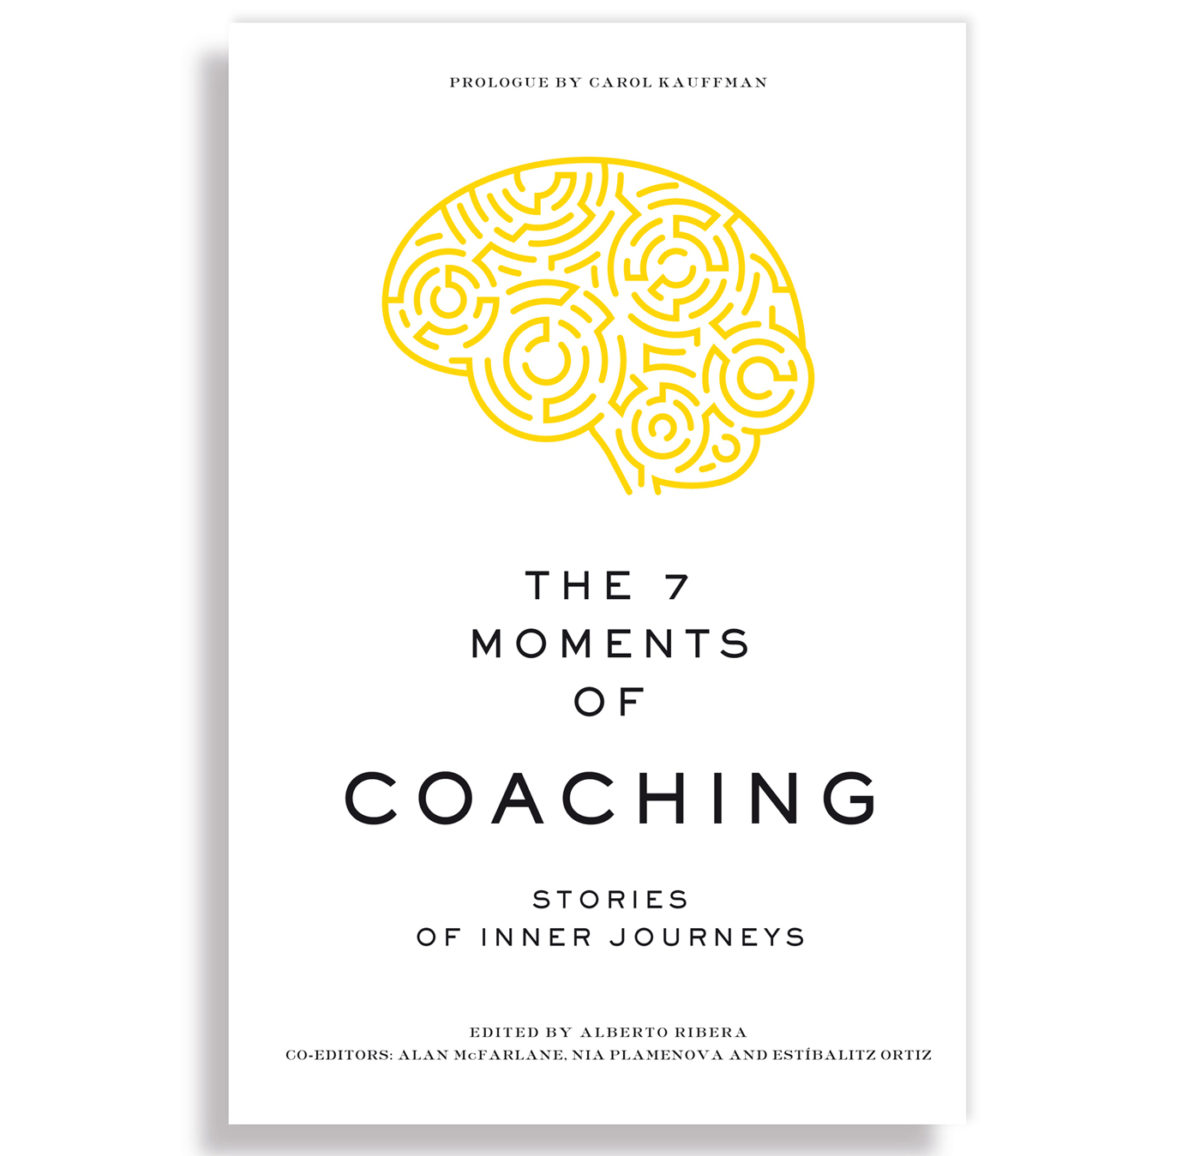 The 7 Moments of Coaching